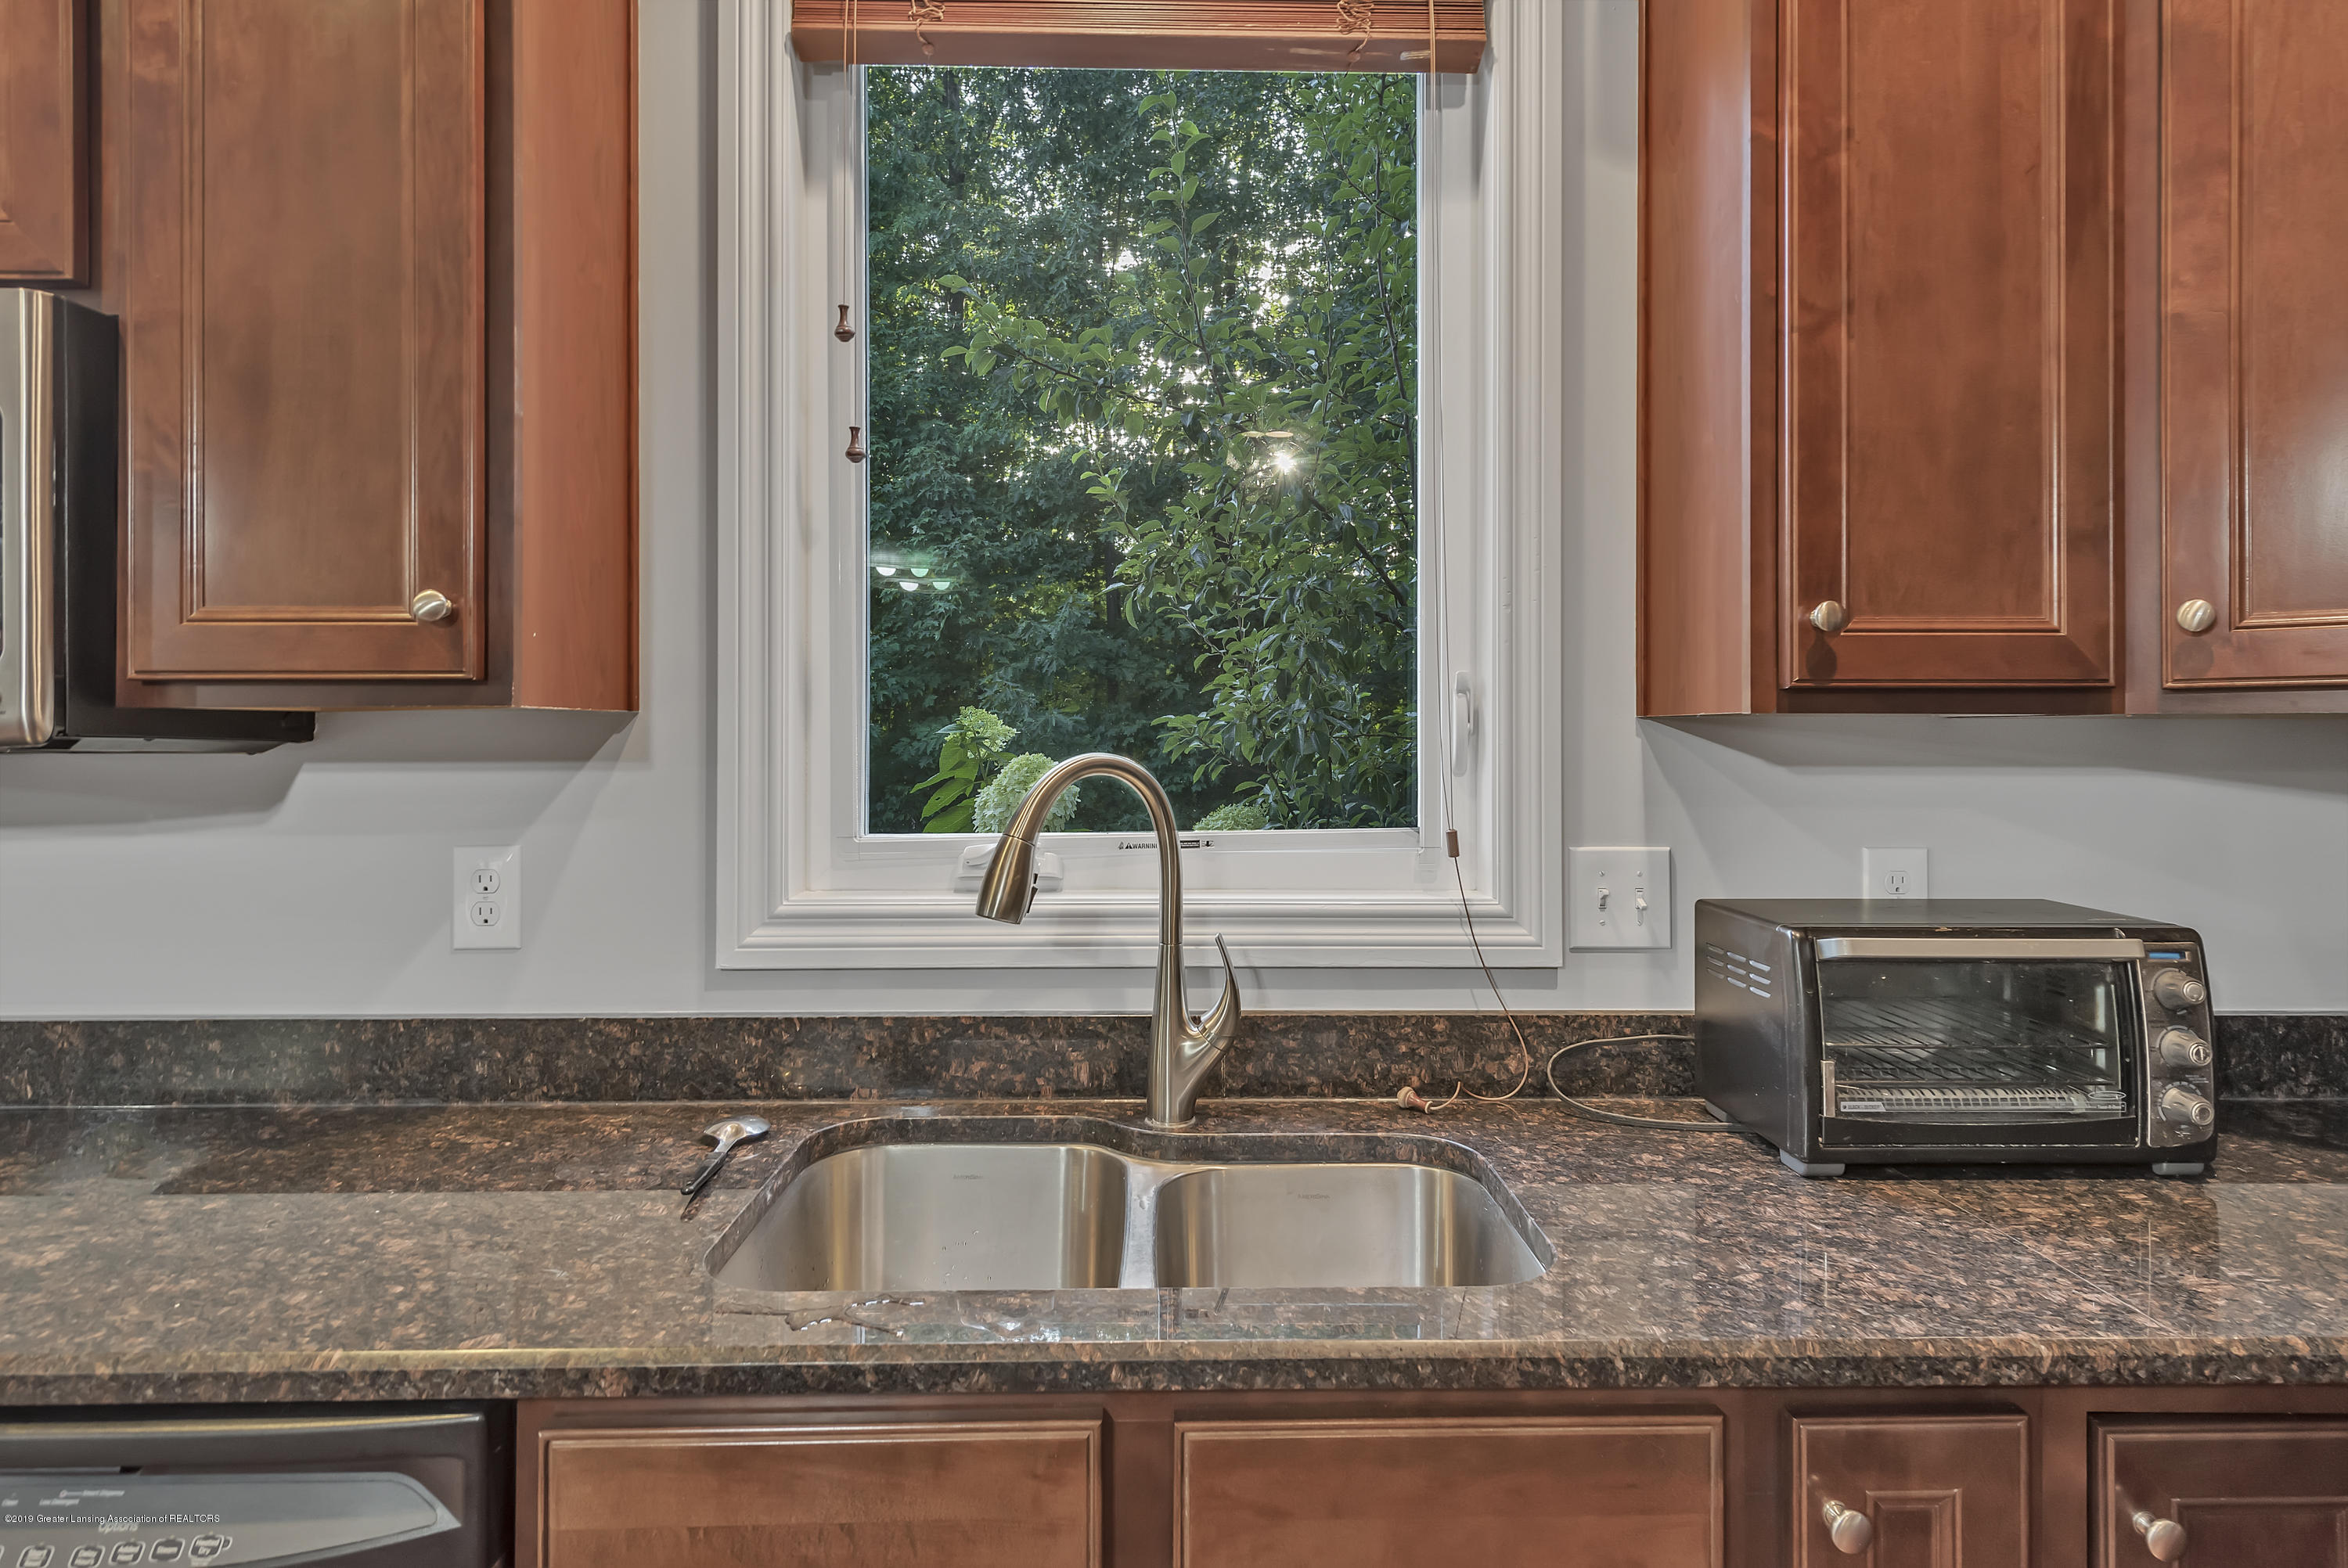 4229 Rain Forest Cir - 4229-Rainforest-Circle-Okemos-MI-windows - 15